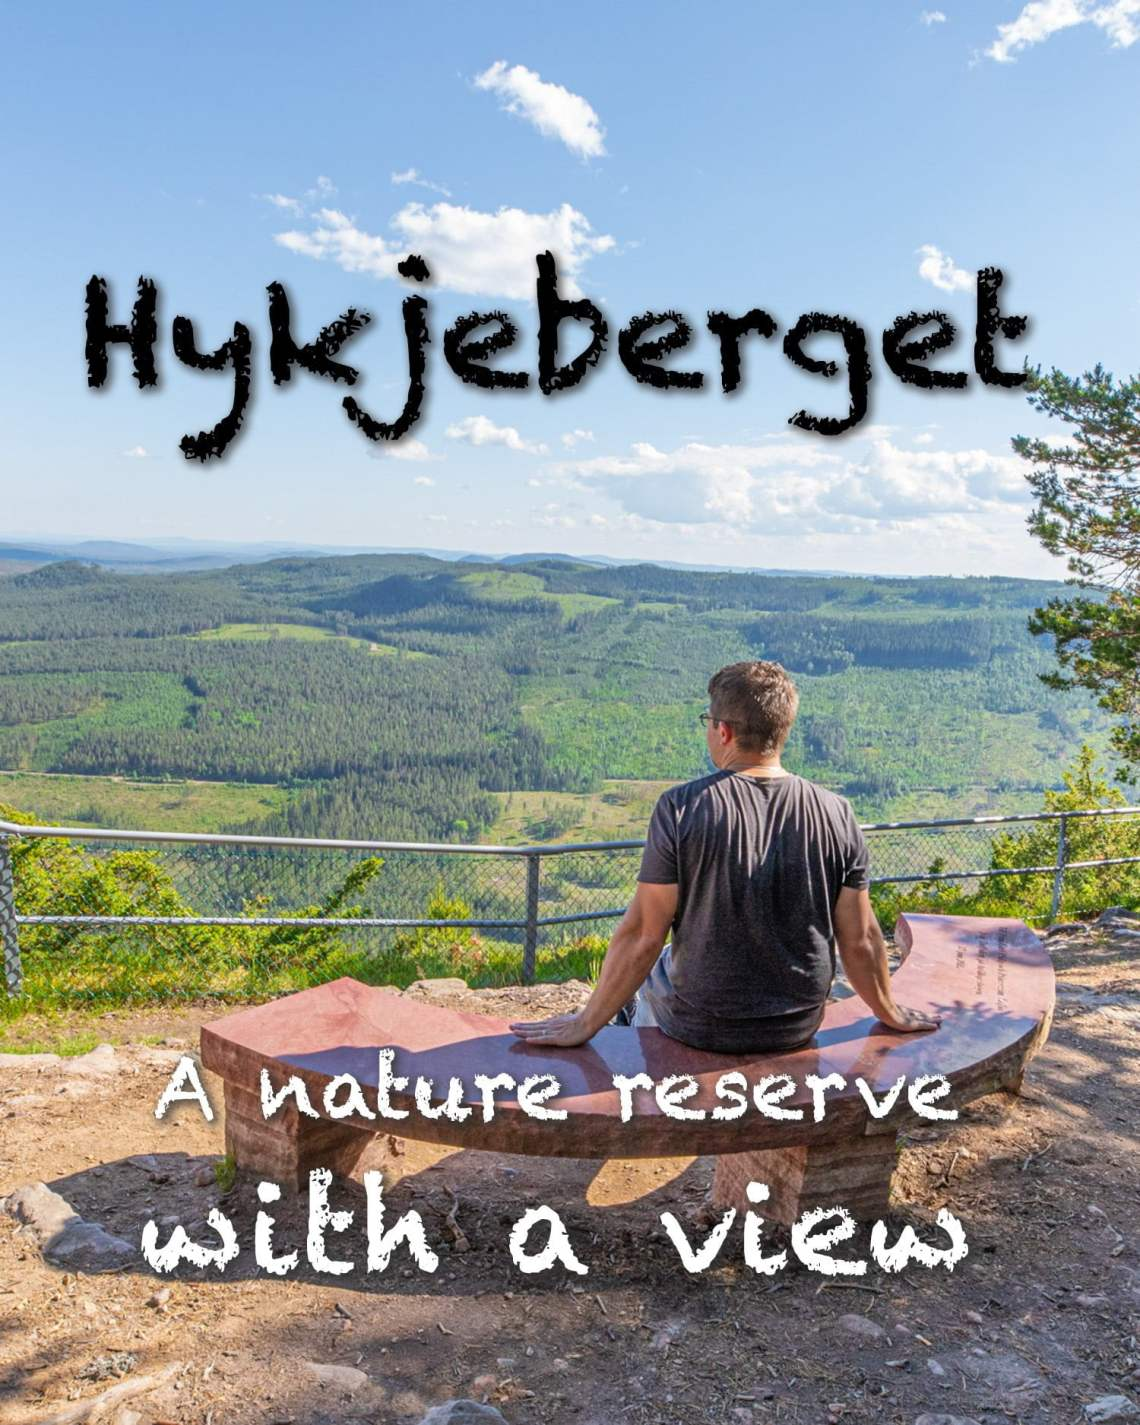 Hykjeberget - A nature reserve with a view